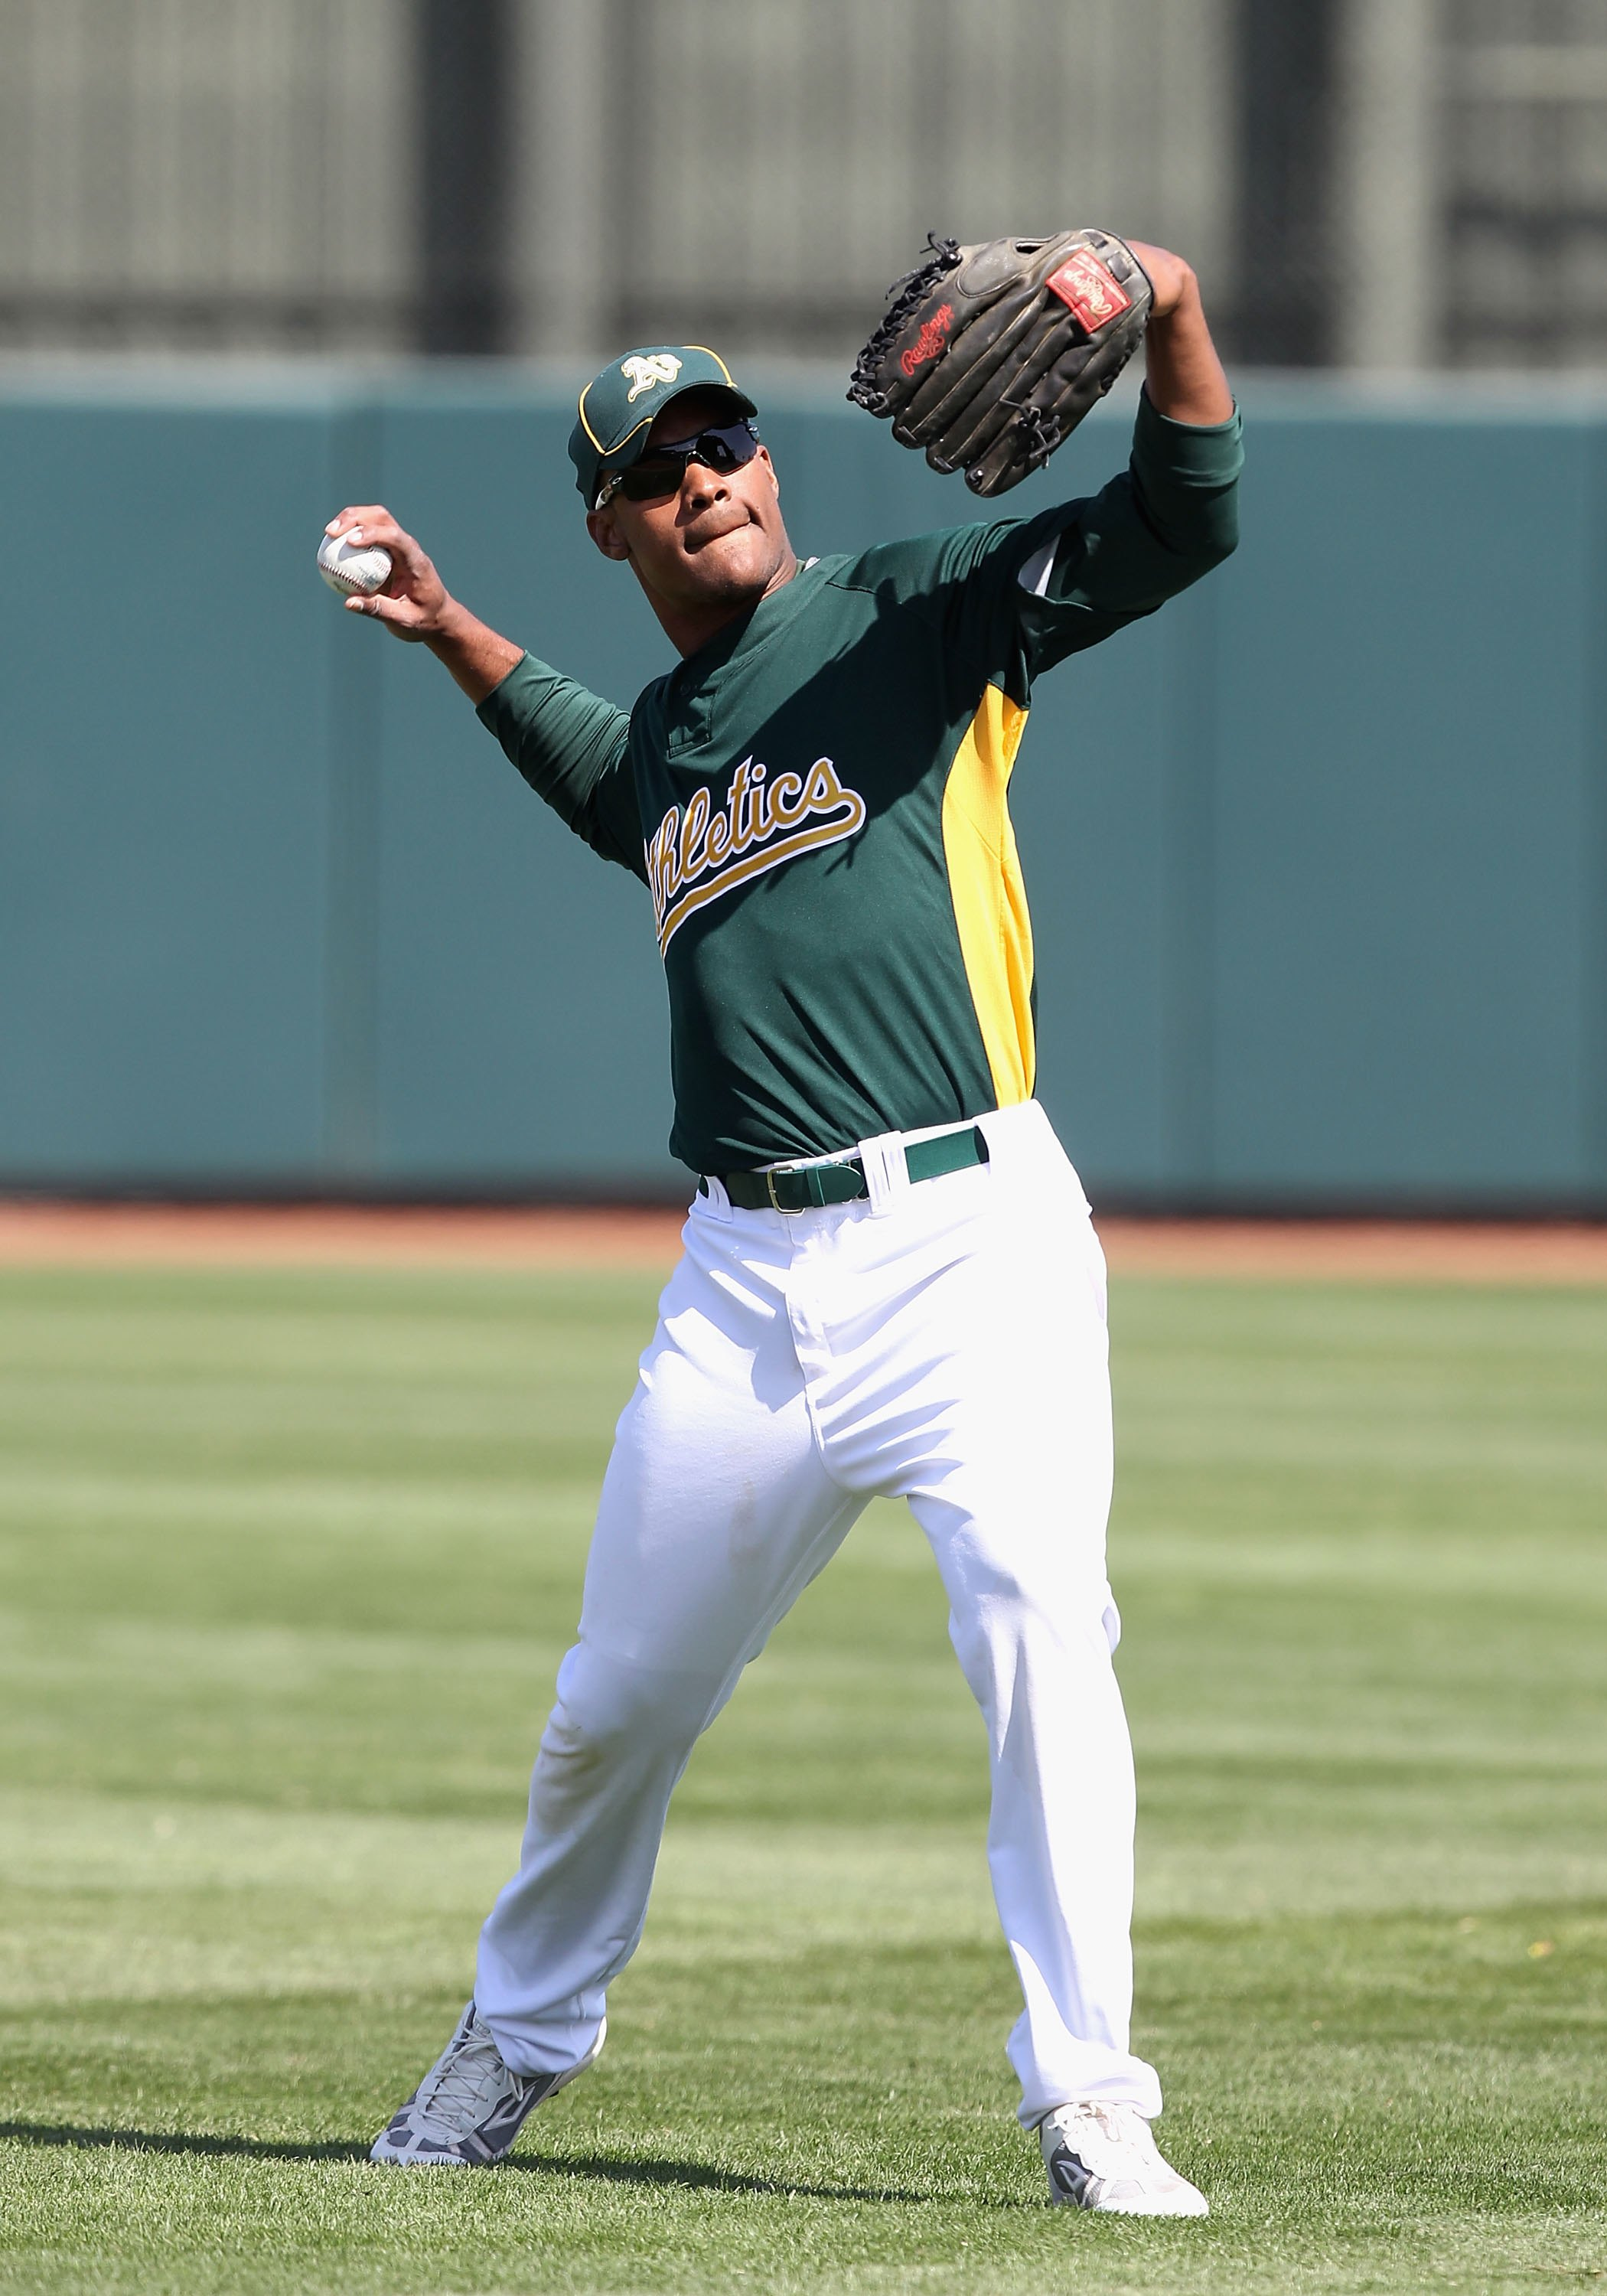 PHOENIX - MARCH 10:  Michael Taylor #23 of the Oakland Athletics warms up before the MLB spring training game against the Chicago White Sox at Phoenix Municipal Stadium on March 10, 2010 in Phoenix, Arizona. The White Sox defeated the A's 9-5  (Photo by C